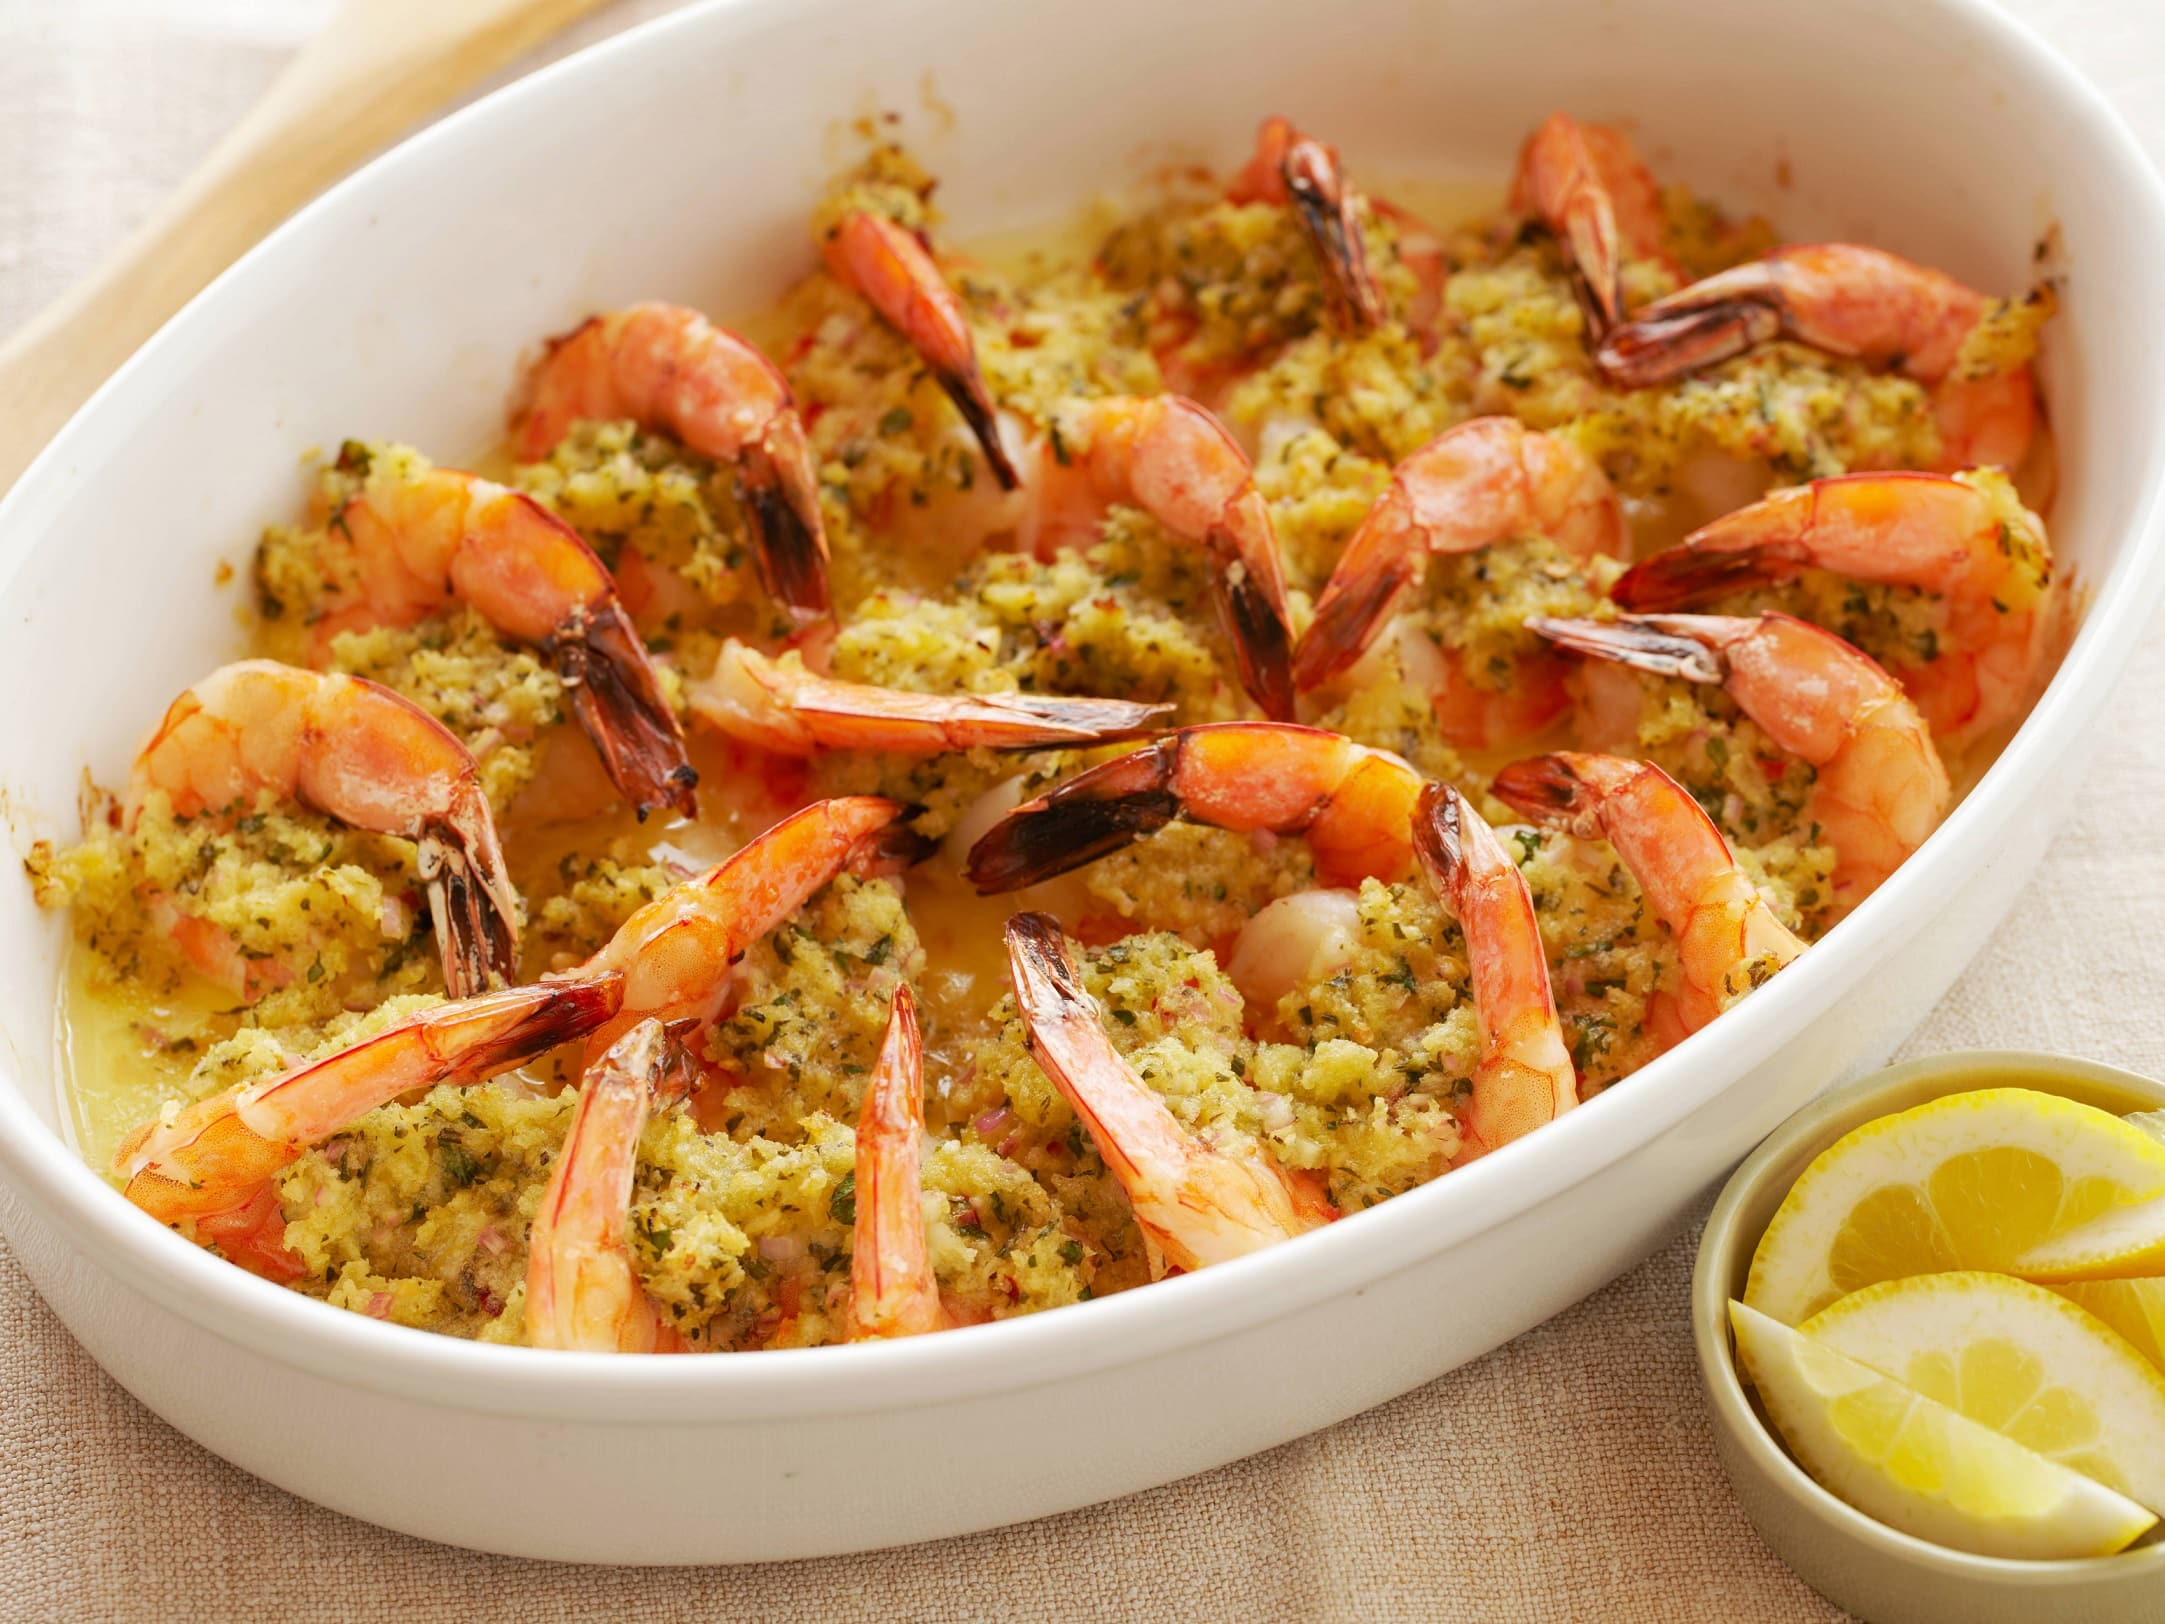 Baked Stuffed Shrimp With Crab recipe